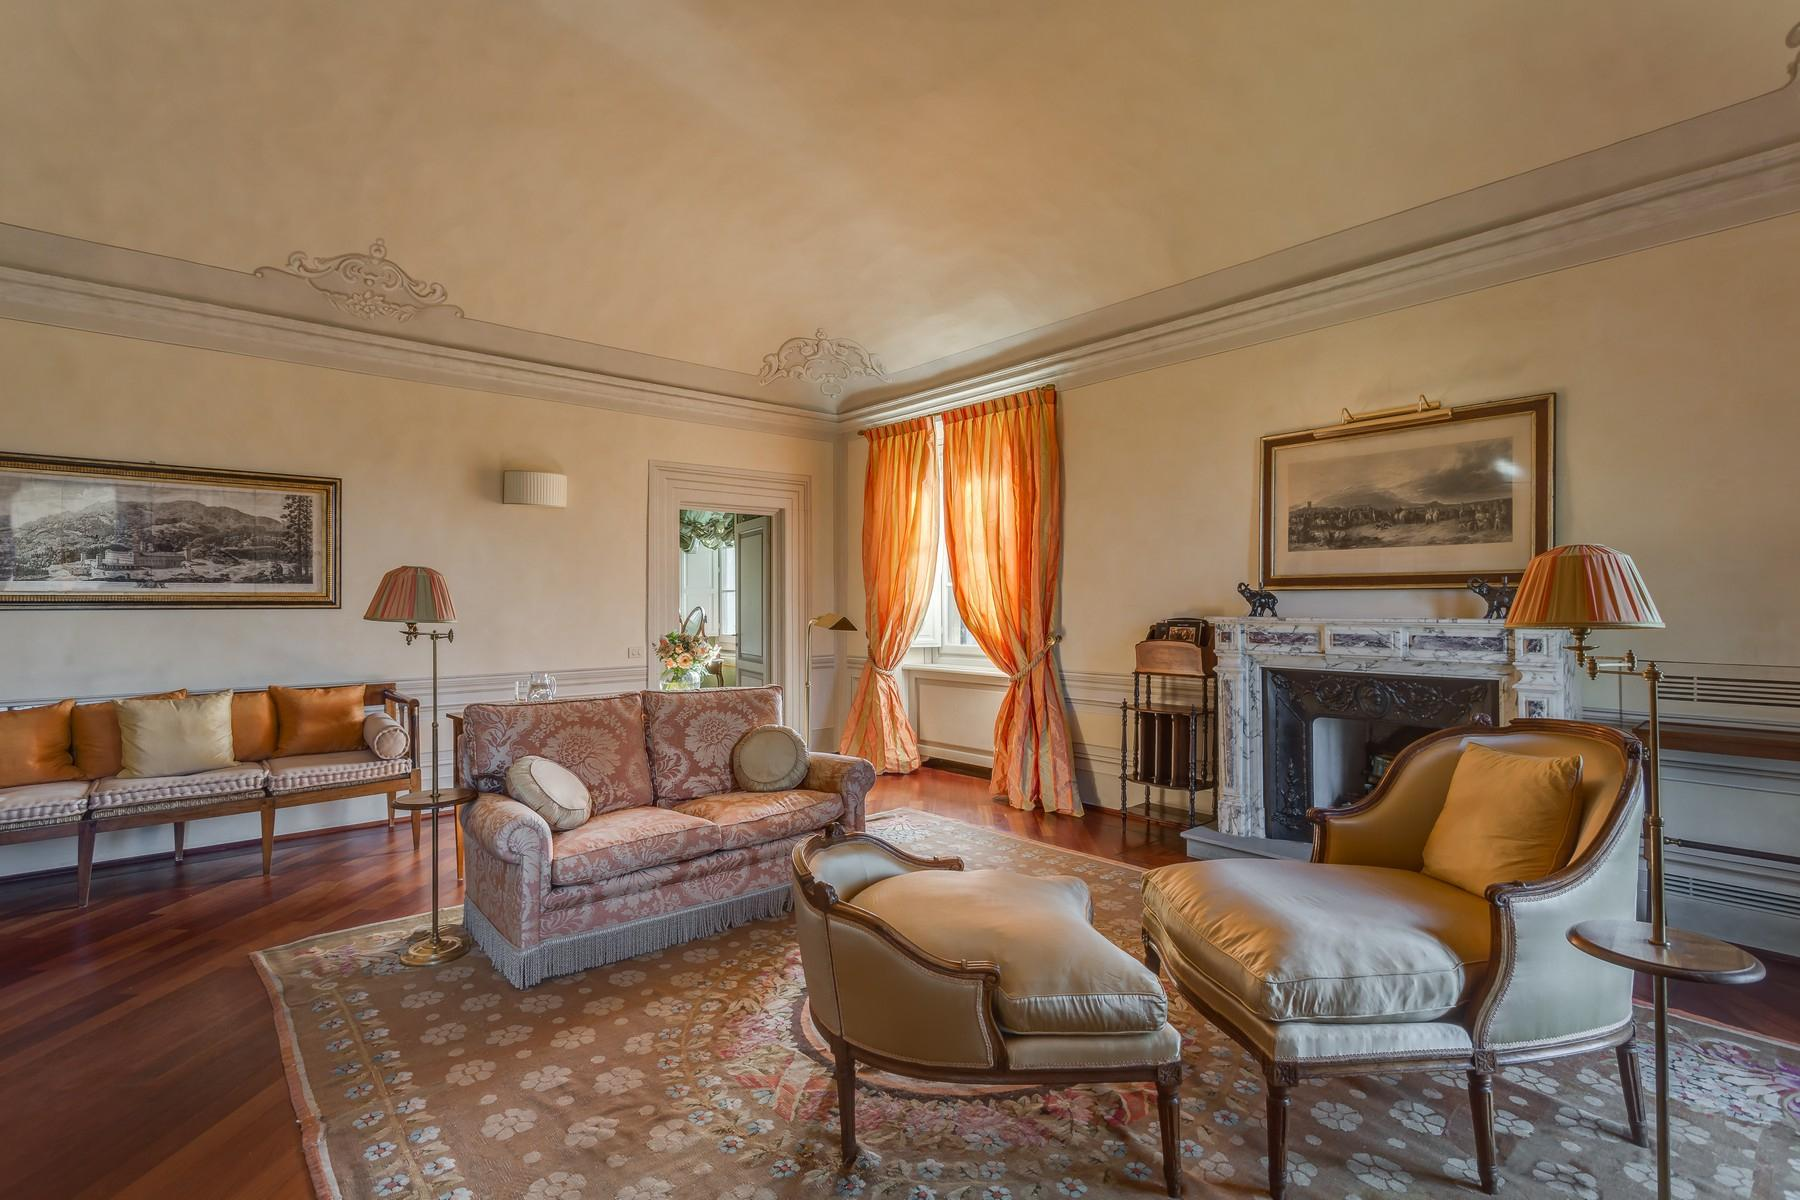 Marvellous Renaissance Villa with pool on the hills of Florence - 28